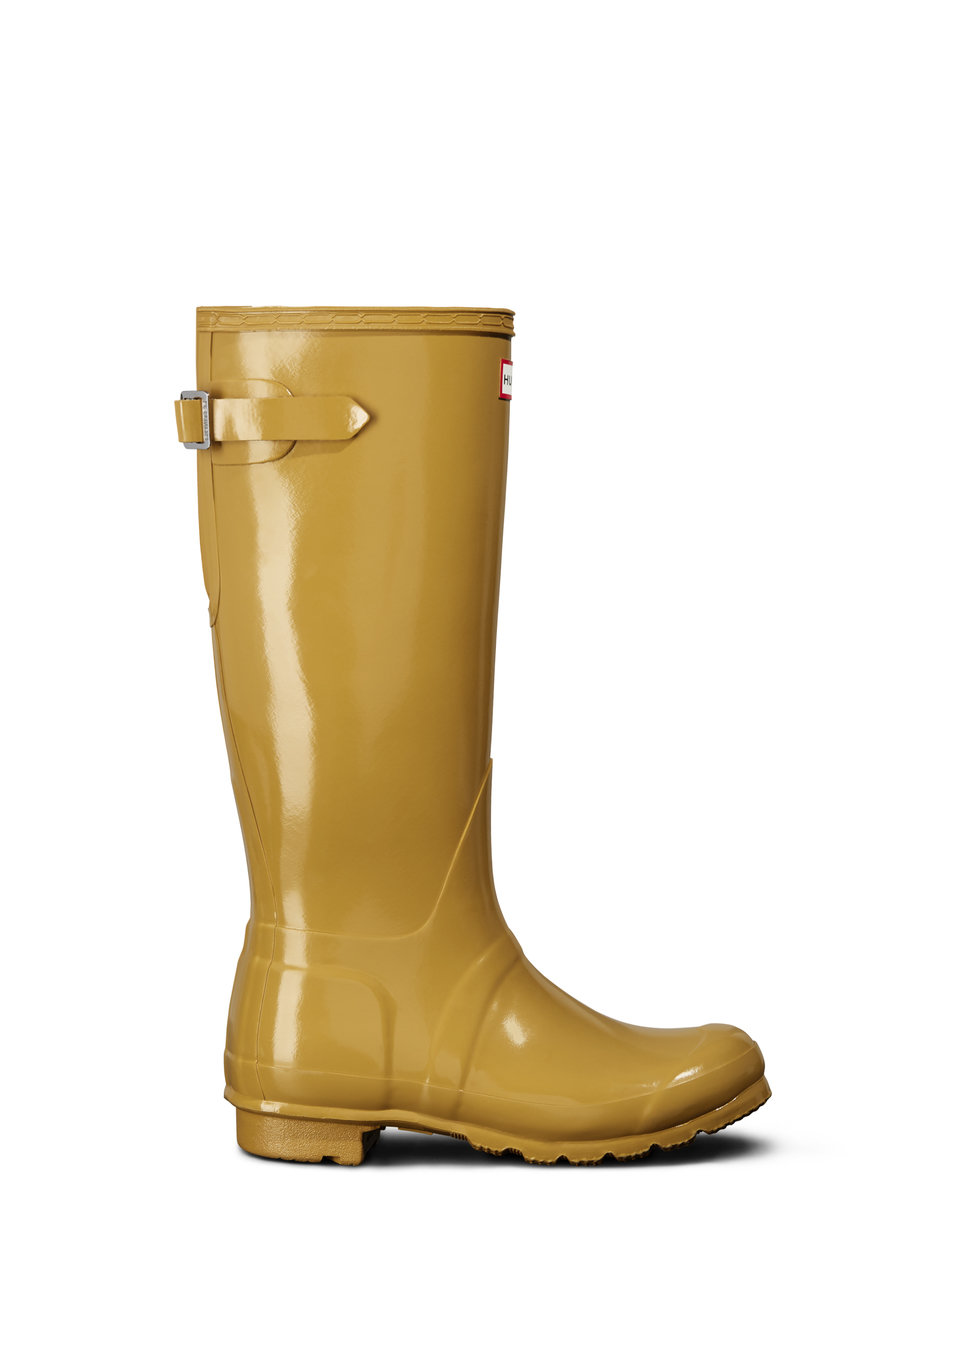 51_TOUR GLOSS BOOT BY HUNTER ORIGINAL - WFT1026RGL-FSE 549 pln.jpg